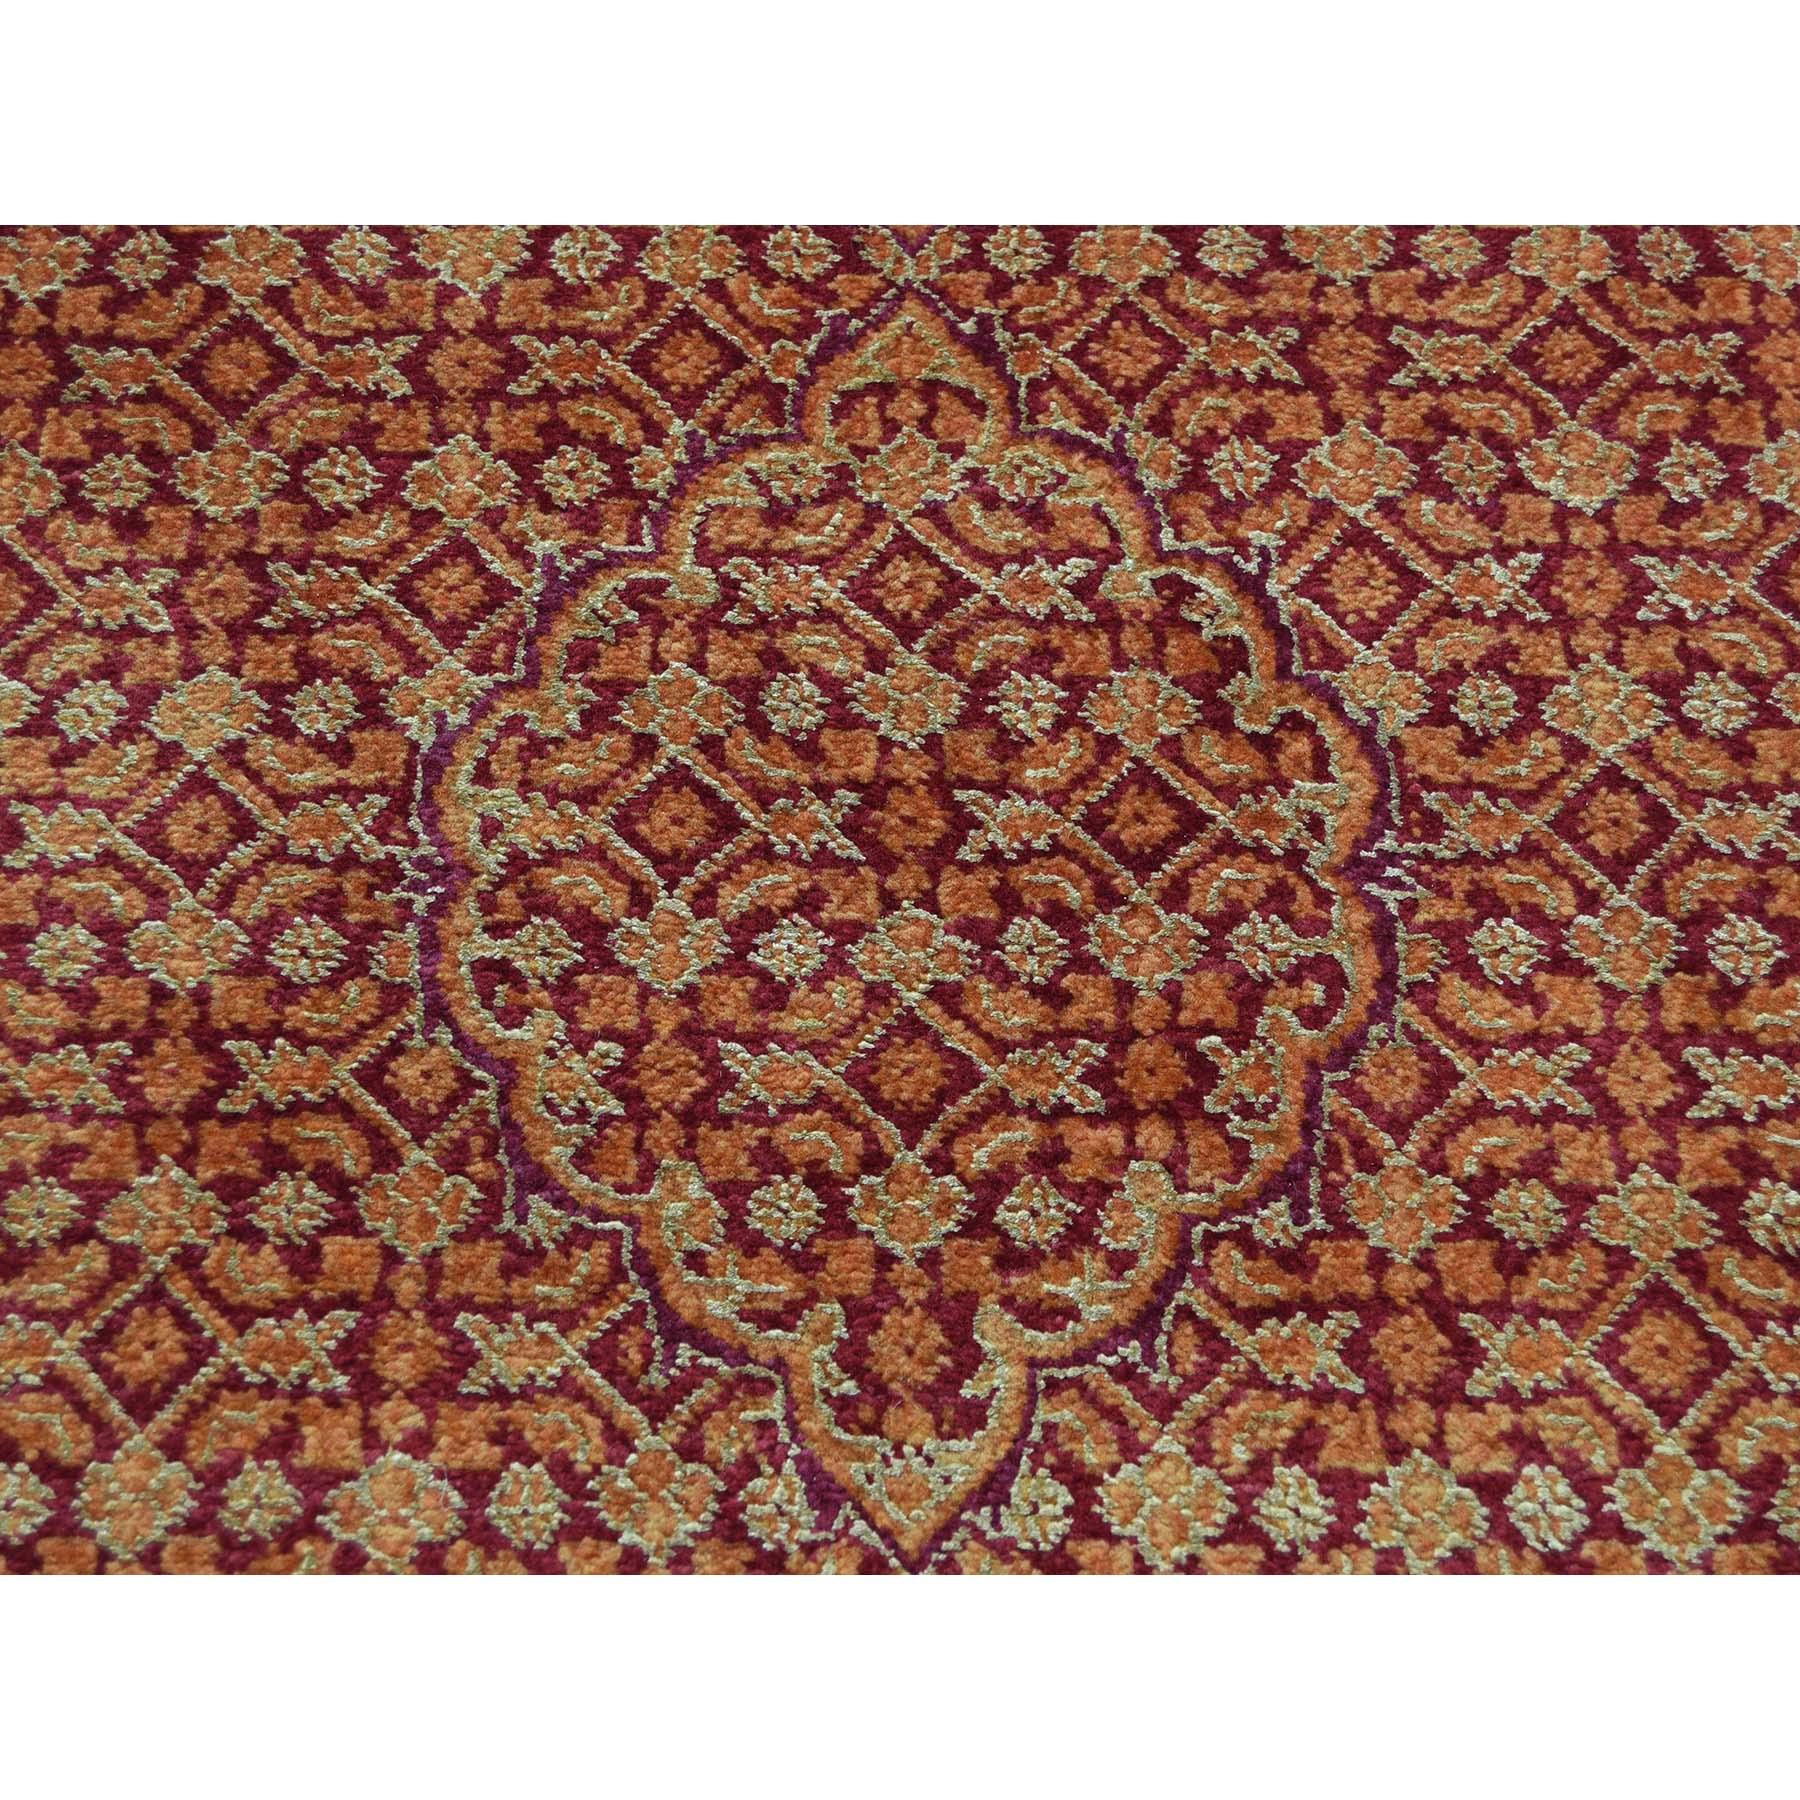 2-8 x16- Kashan Tone On Tone XL Runner Hand Knotted Oriental Rug